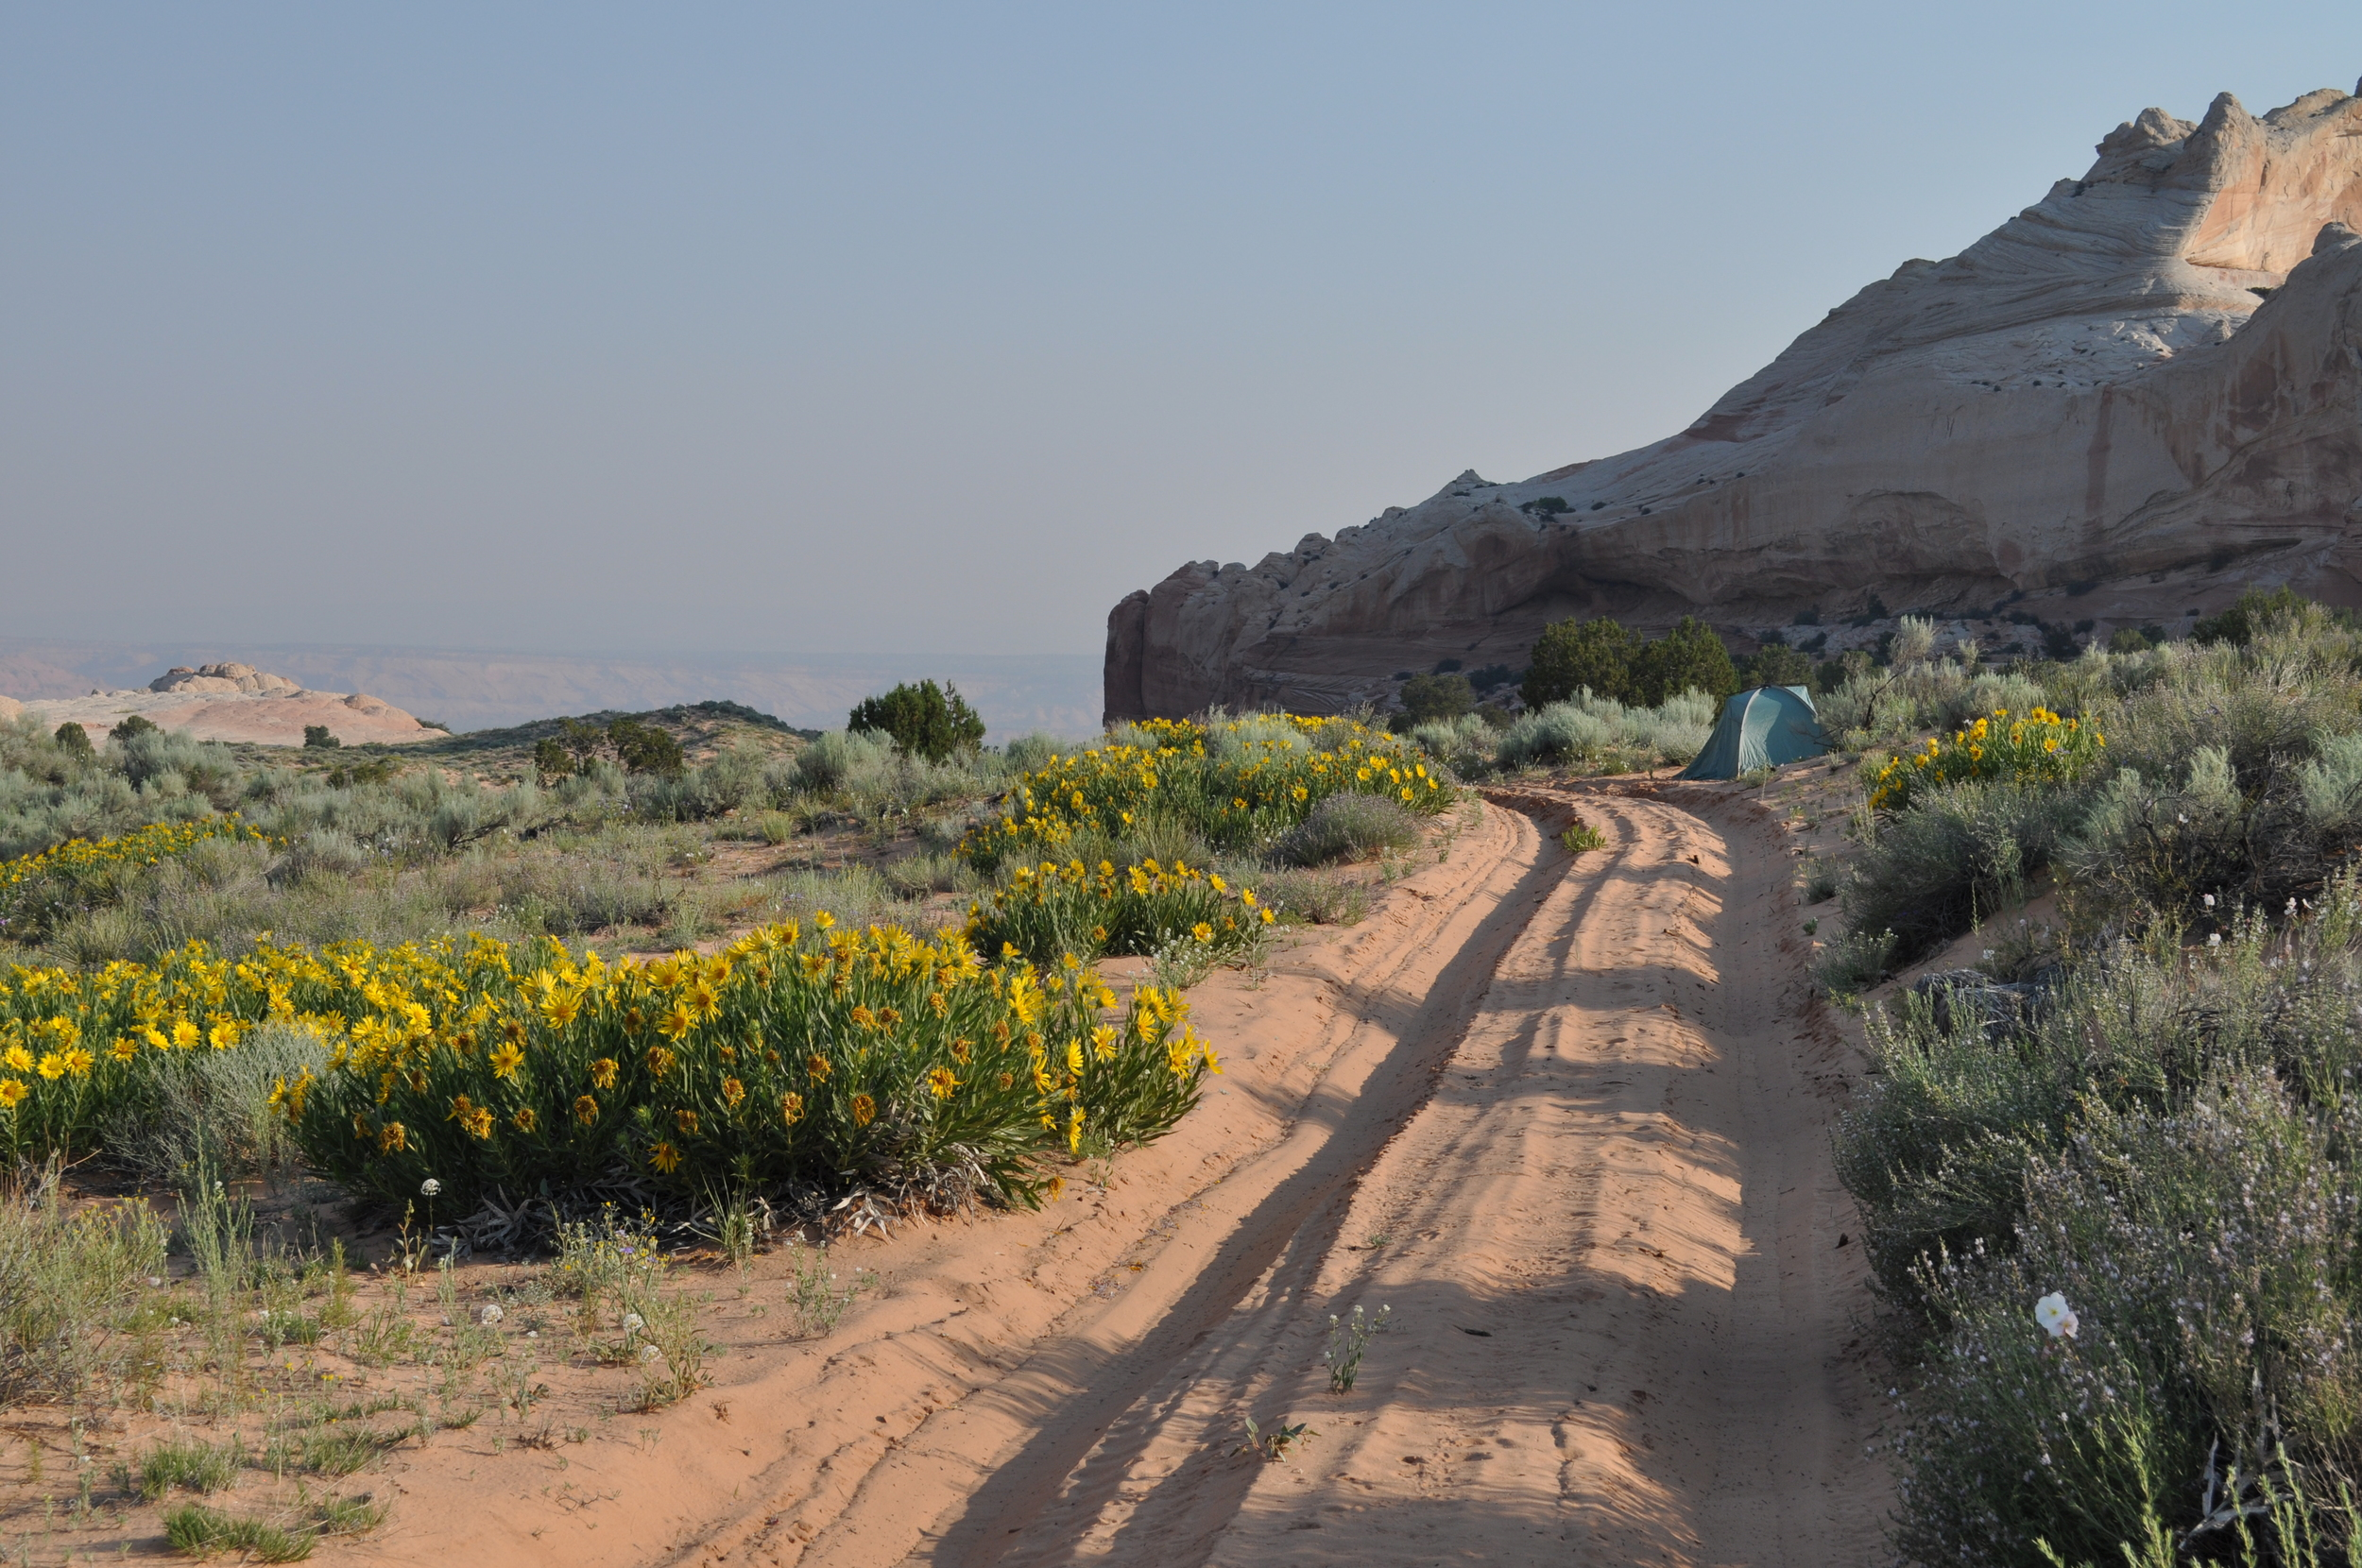 A typically incredible solitary camping spot while exploring the national treasures protected by the BLM